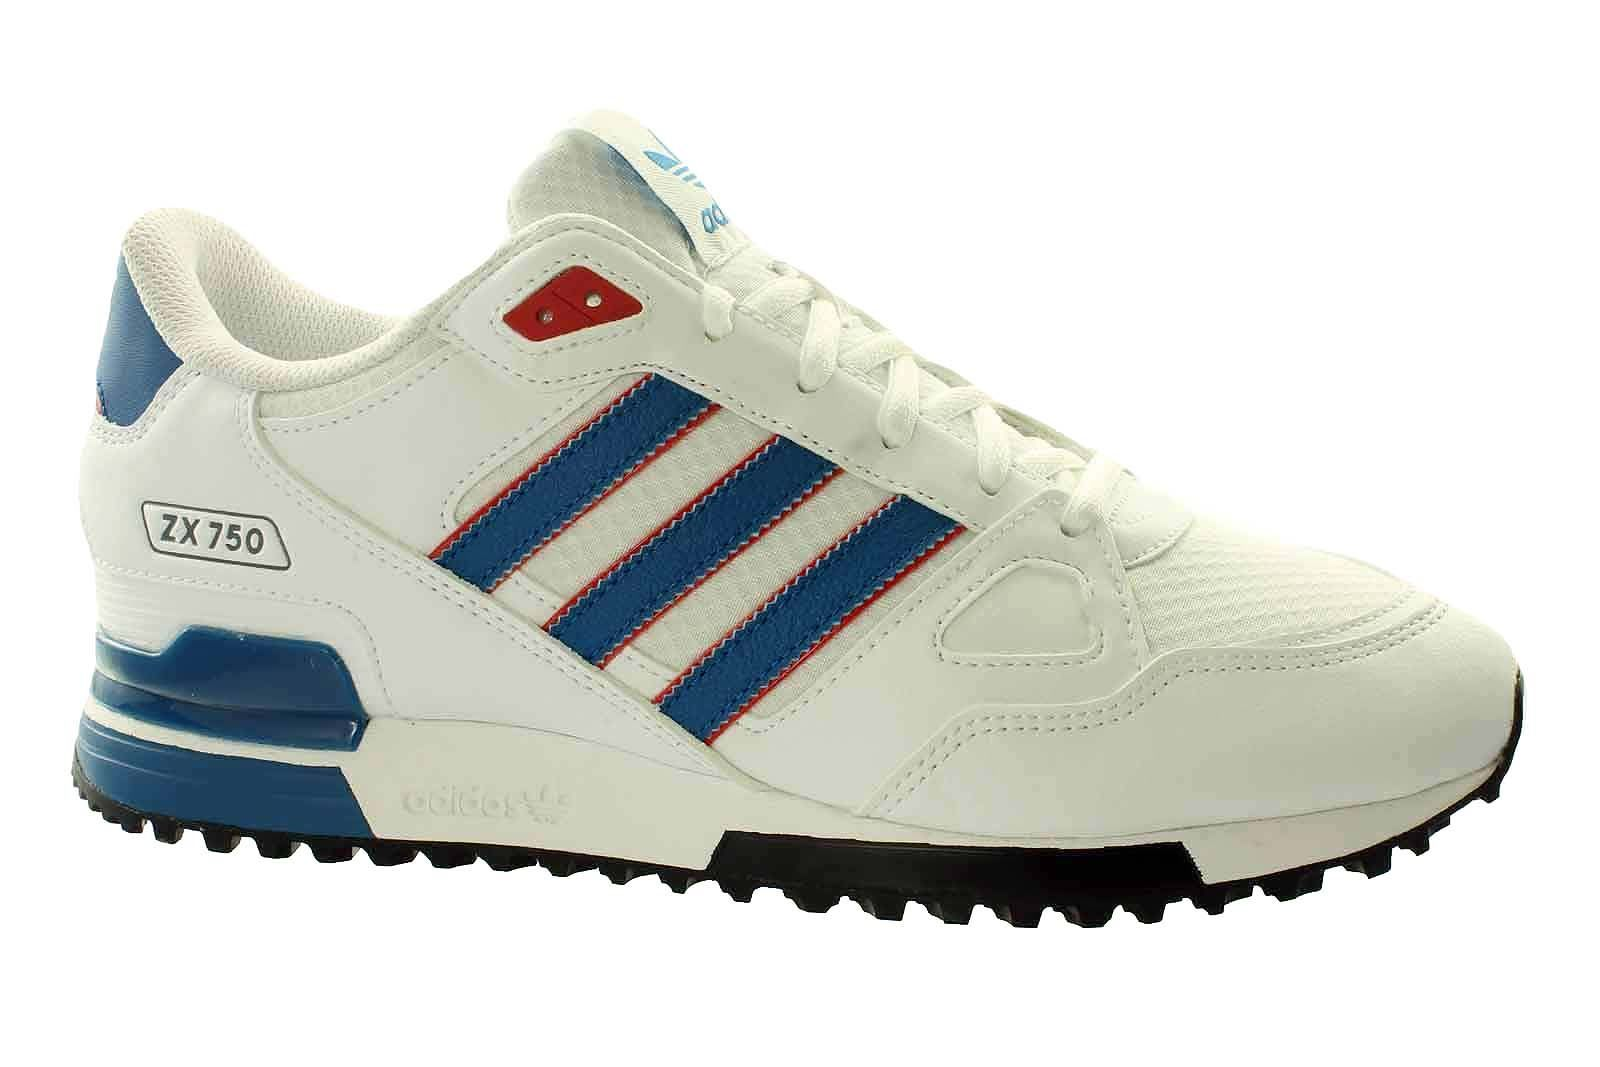 d7b4204cd adidas ZX 750 Mens Trainers~Originals~UK 3.5 - 11.5 Only in 2019 ...